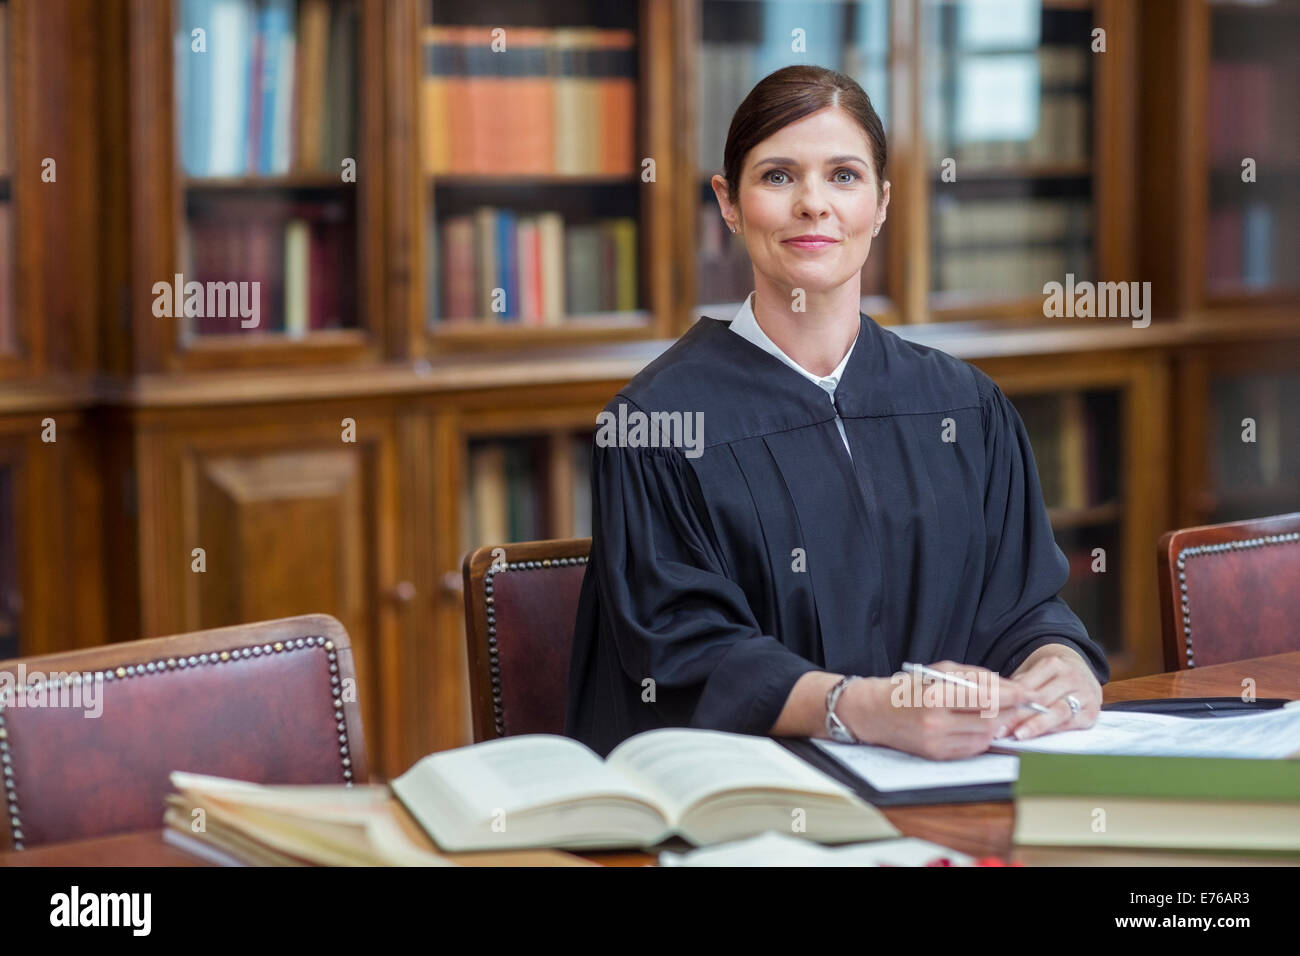 Judge doing research in chambers - Stock Image